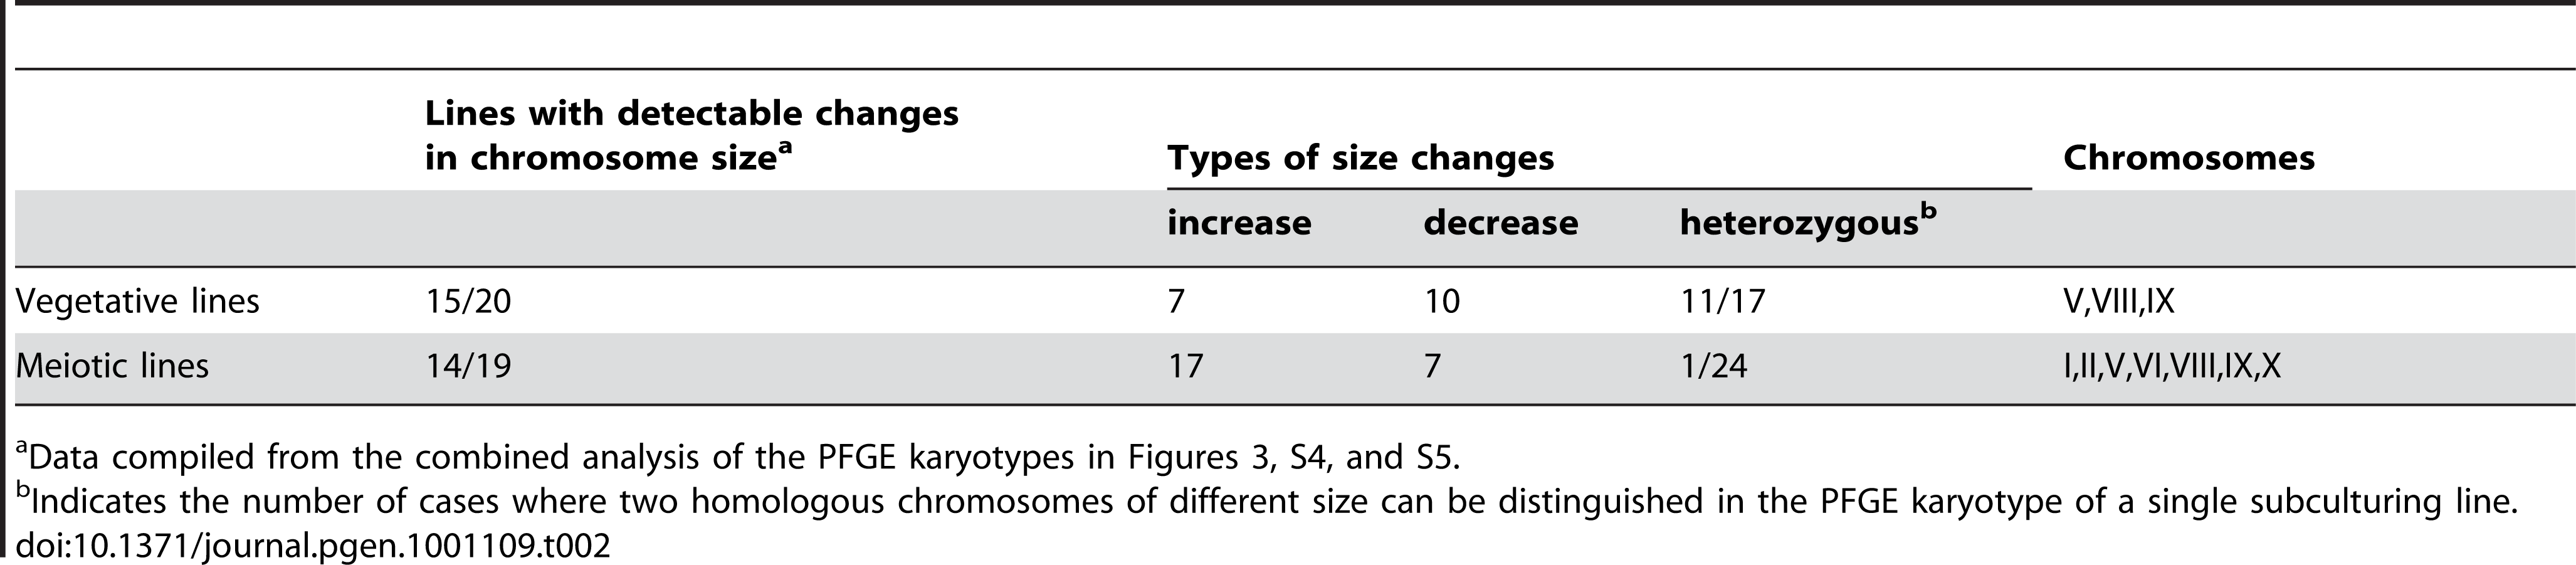 Summary of chromosome size changes detected by PFGE karyotyping.